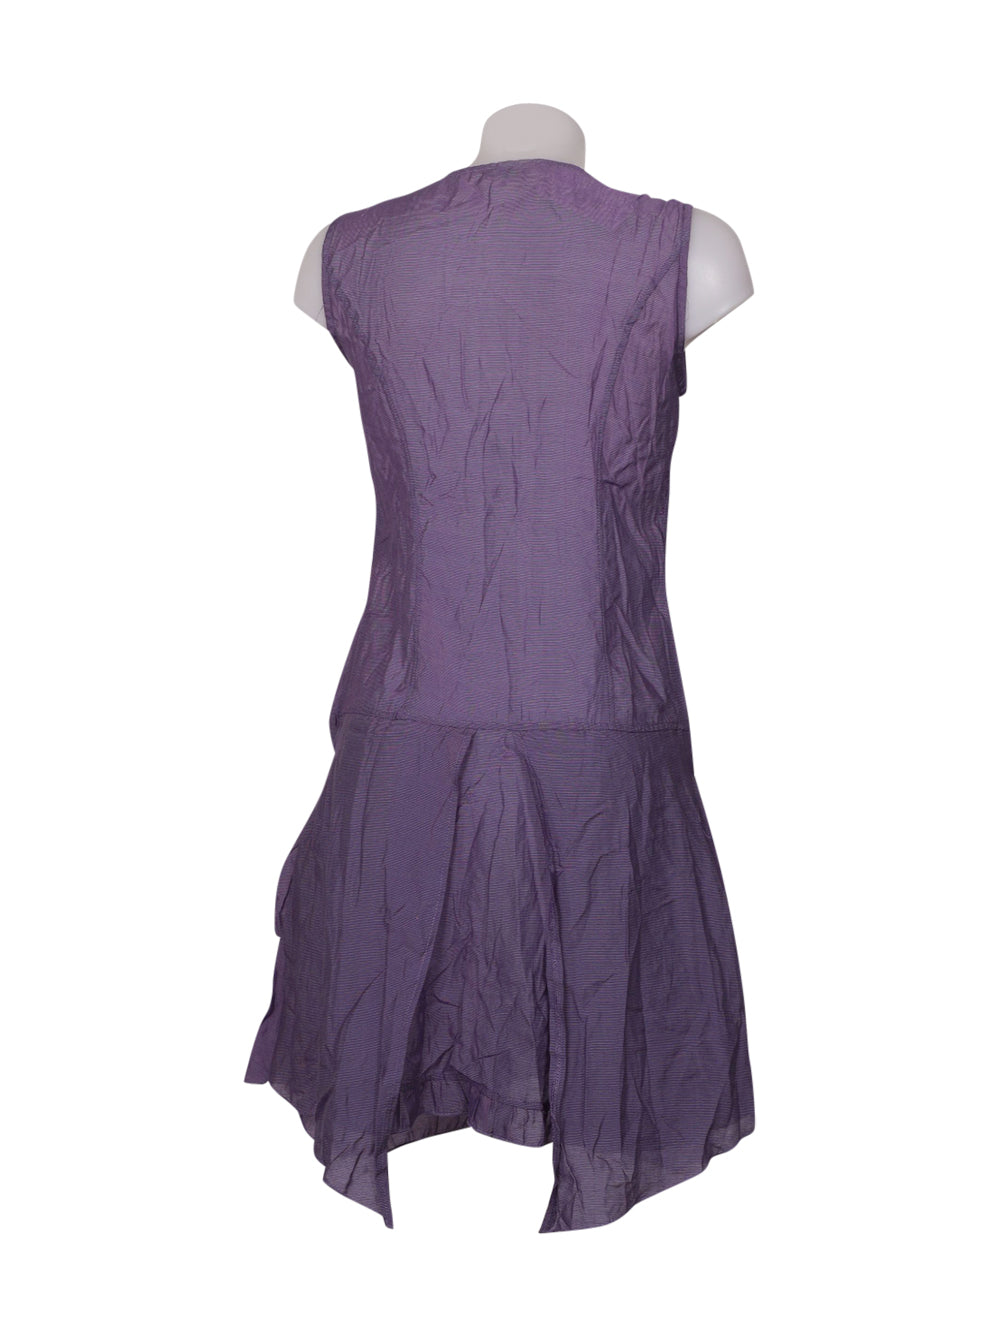 Back photo of Preloved franstyle Violet Woman's dress - size 8/S